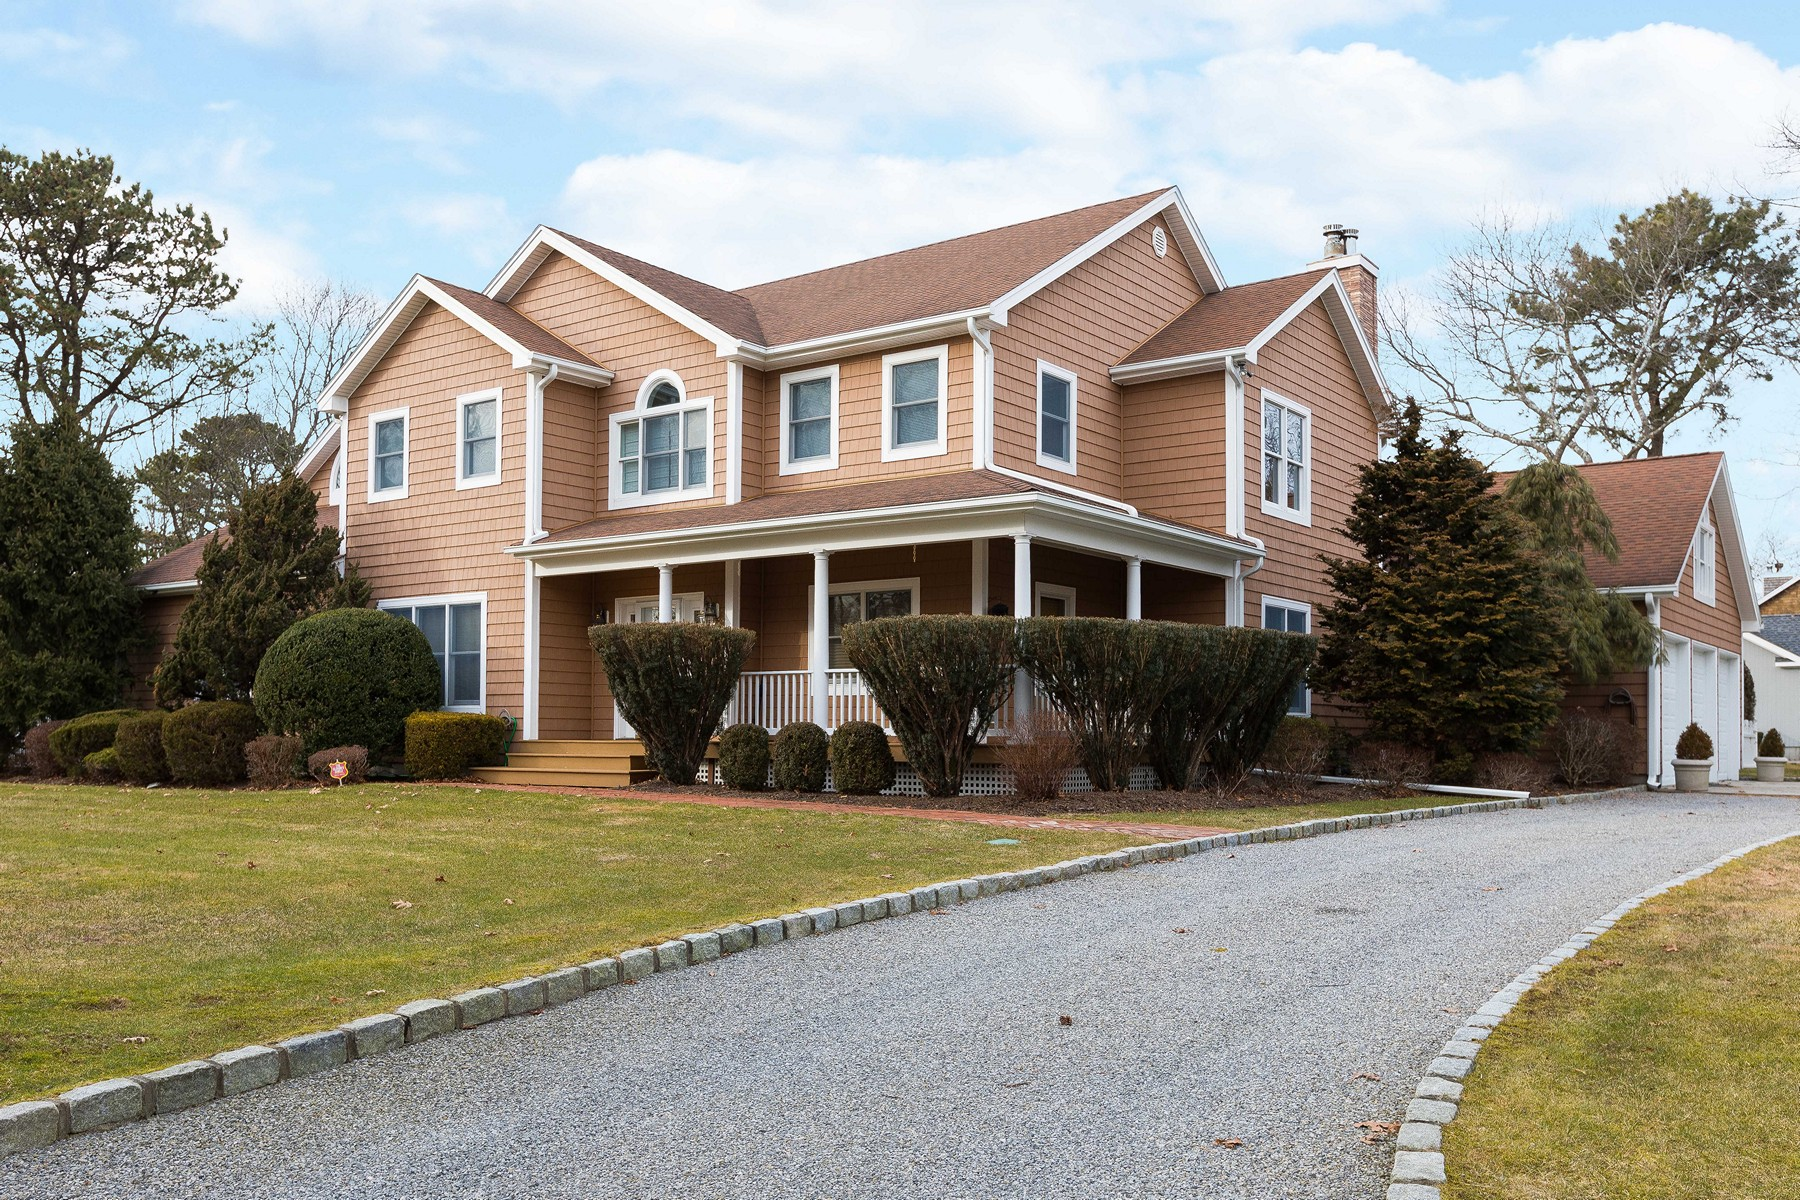 single family homes for Sale at Westhampton Bch 1 Jeffrey Ln Westhampton Beach, New York 11978 United States